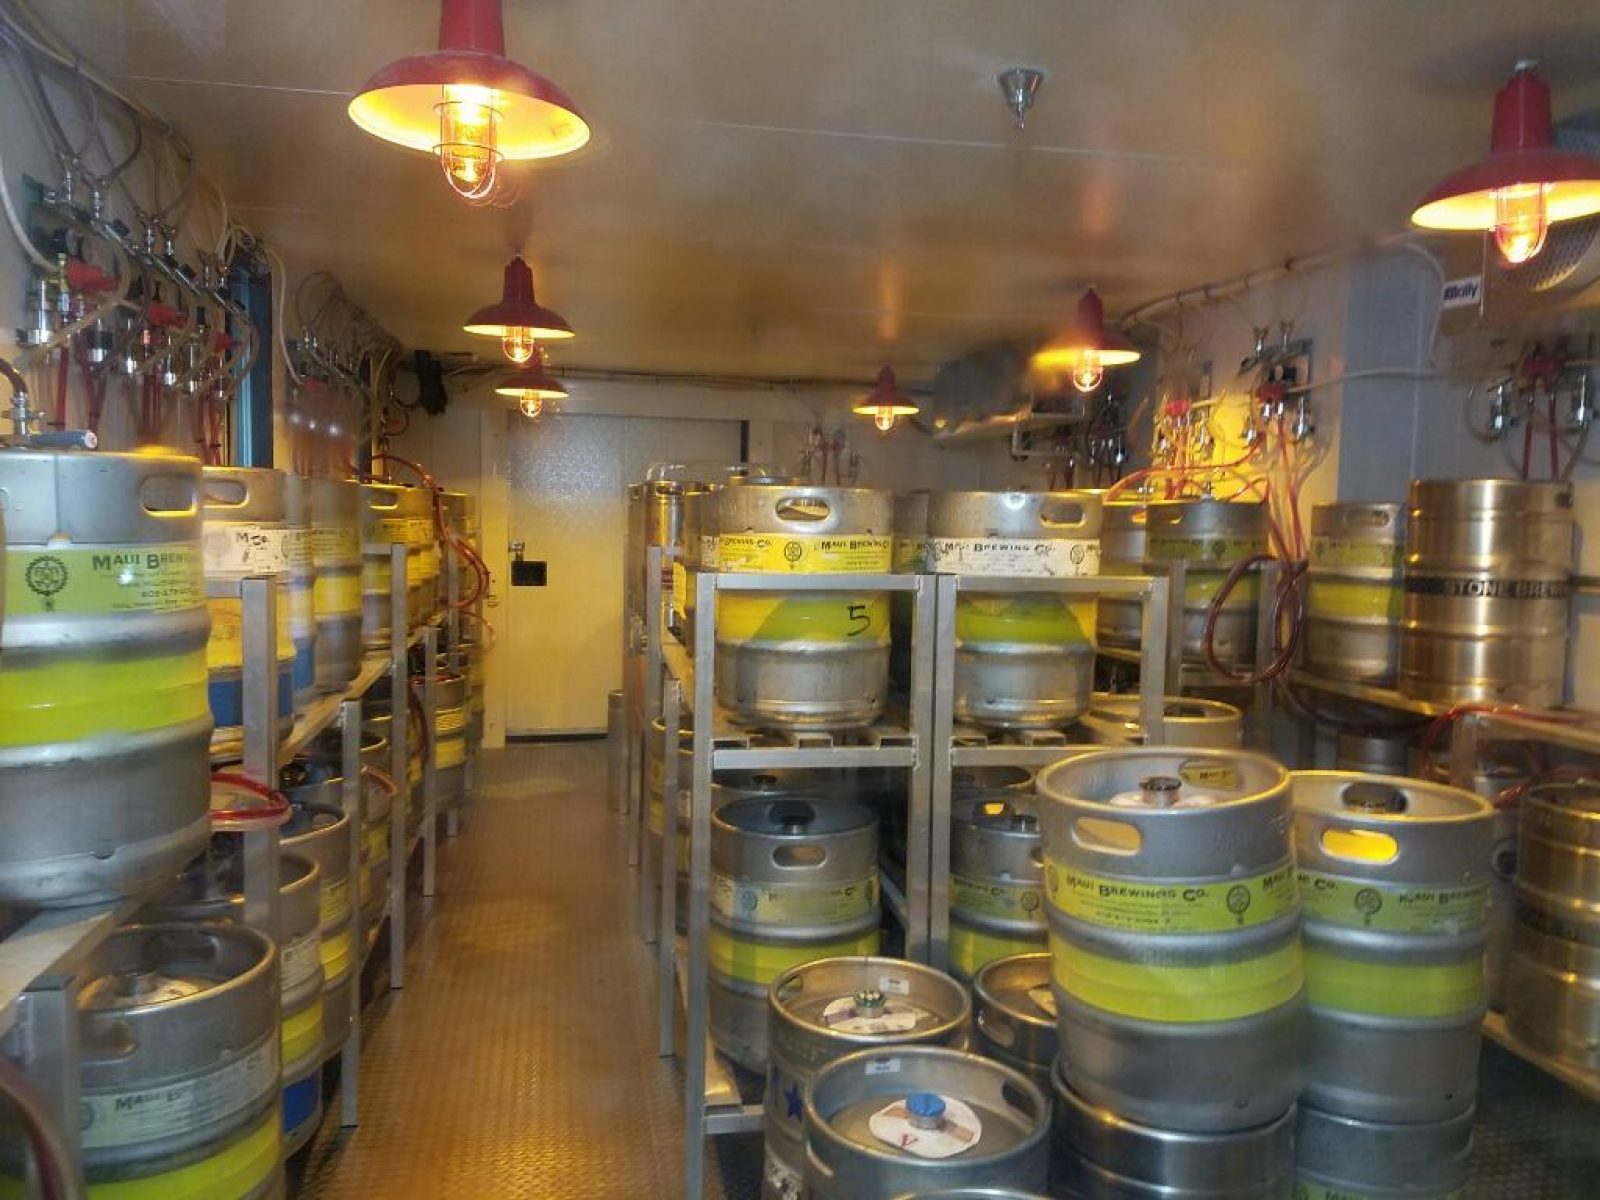 Crowded keg room